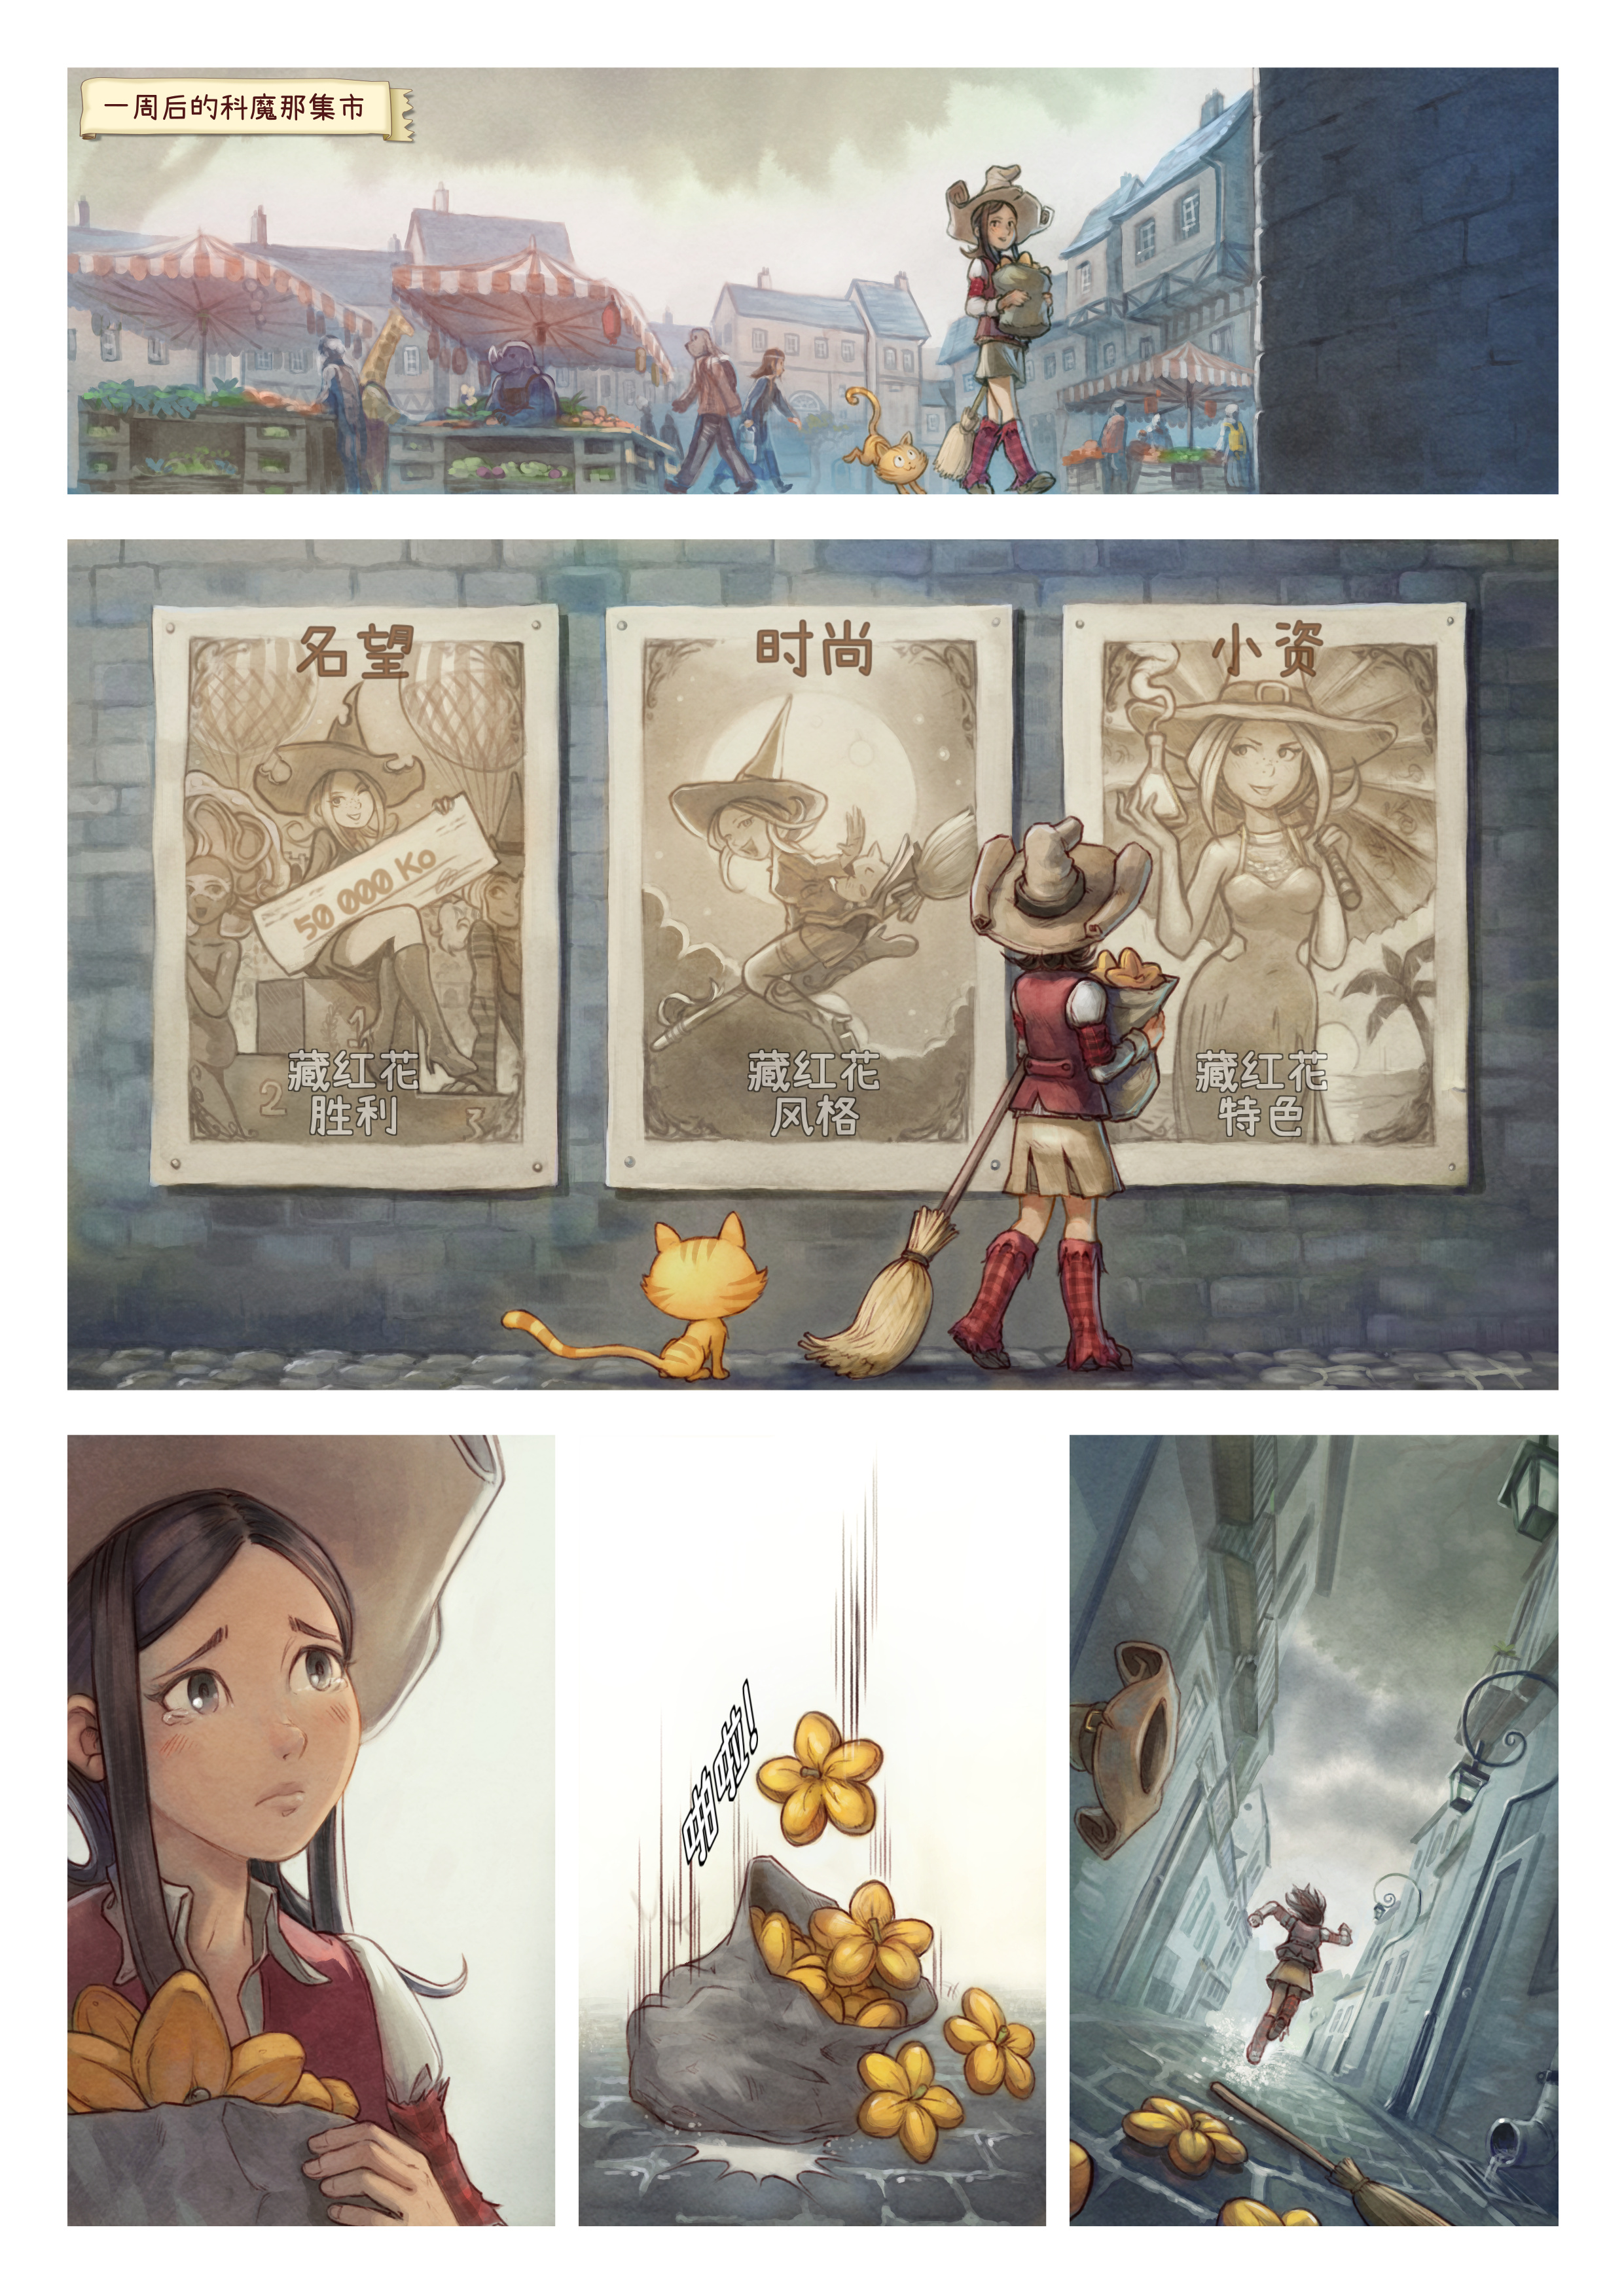 A webcomic page of Pepper&Carrot, 漫画全集 23 [cn], 页面 1